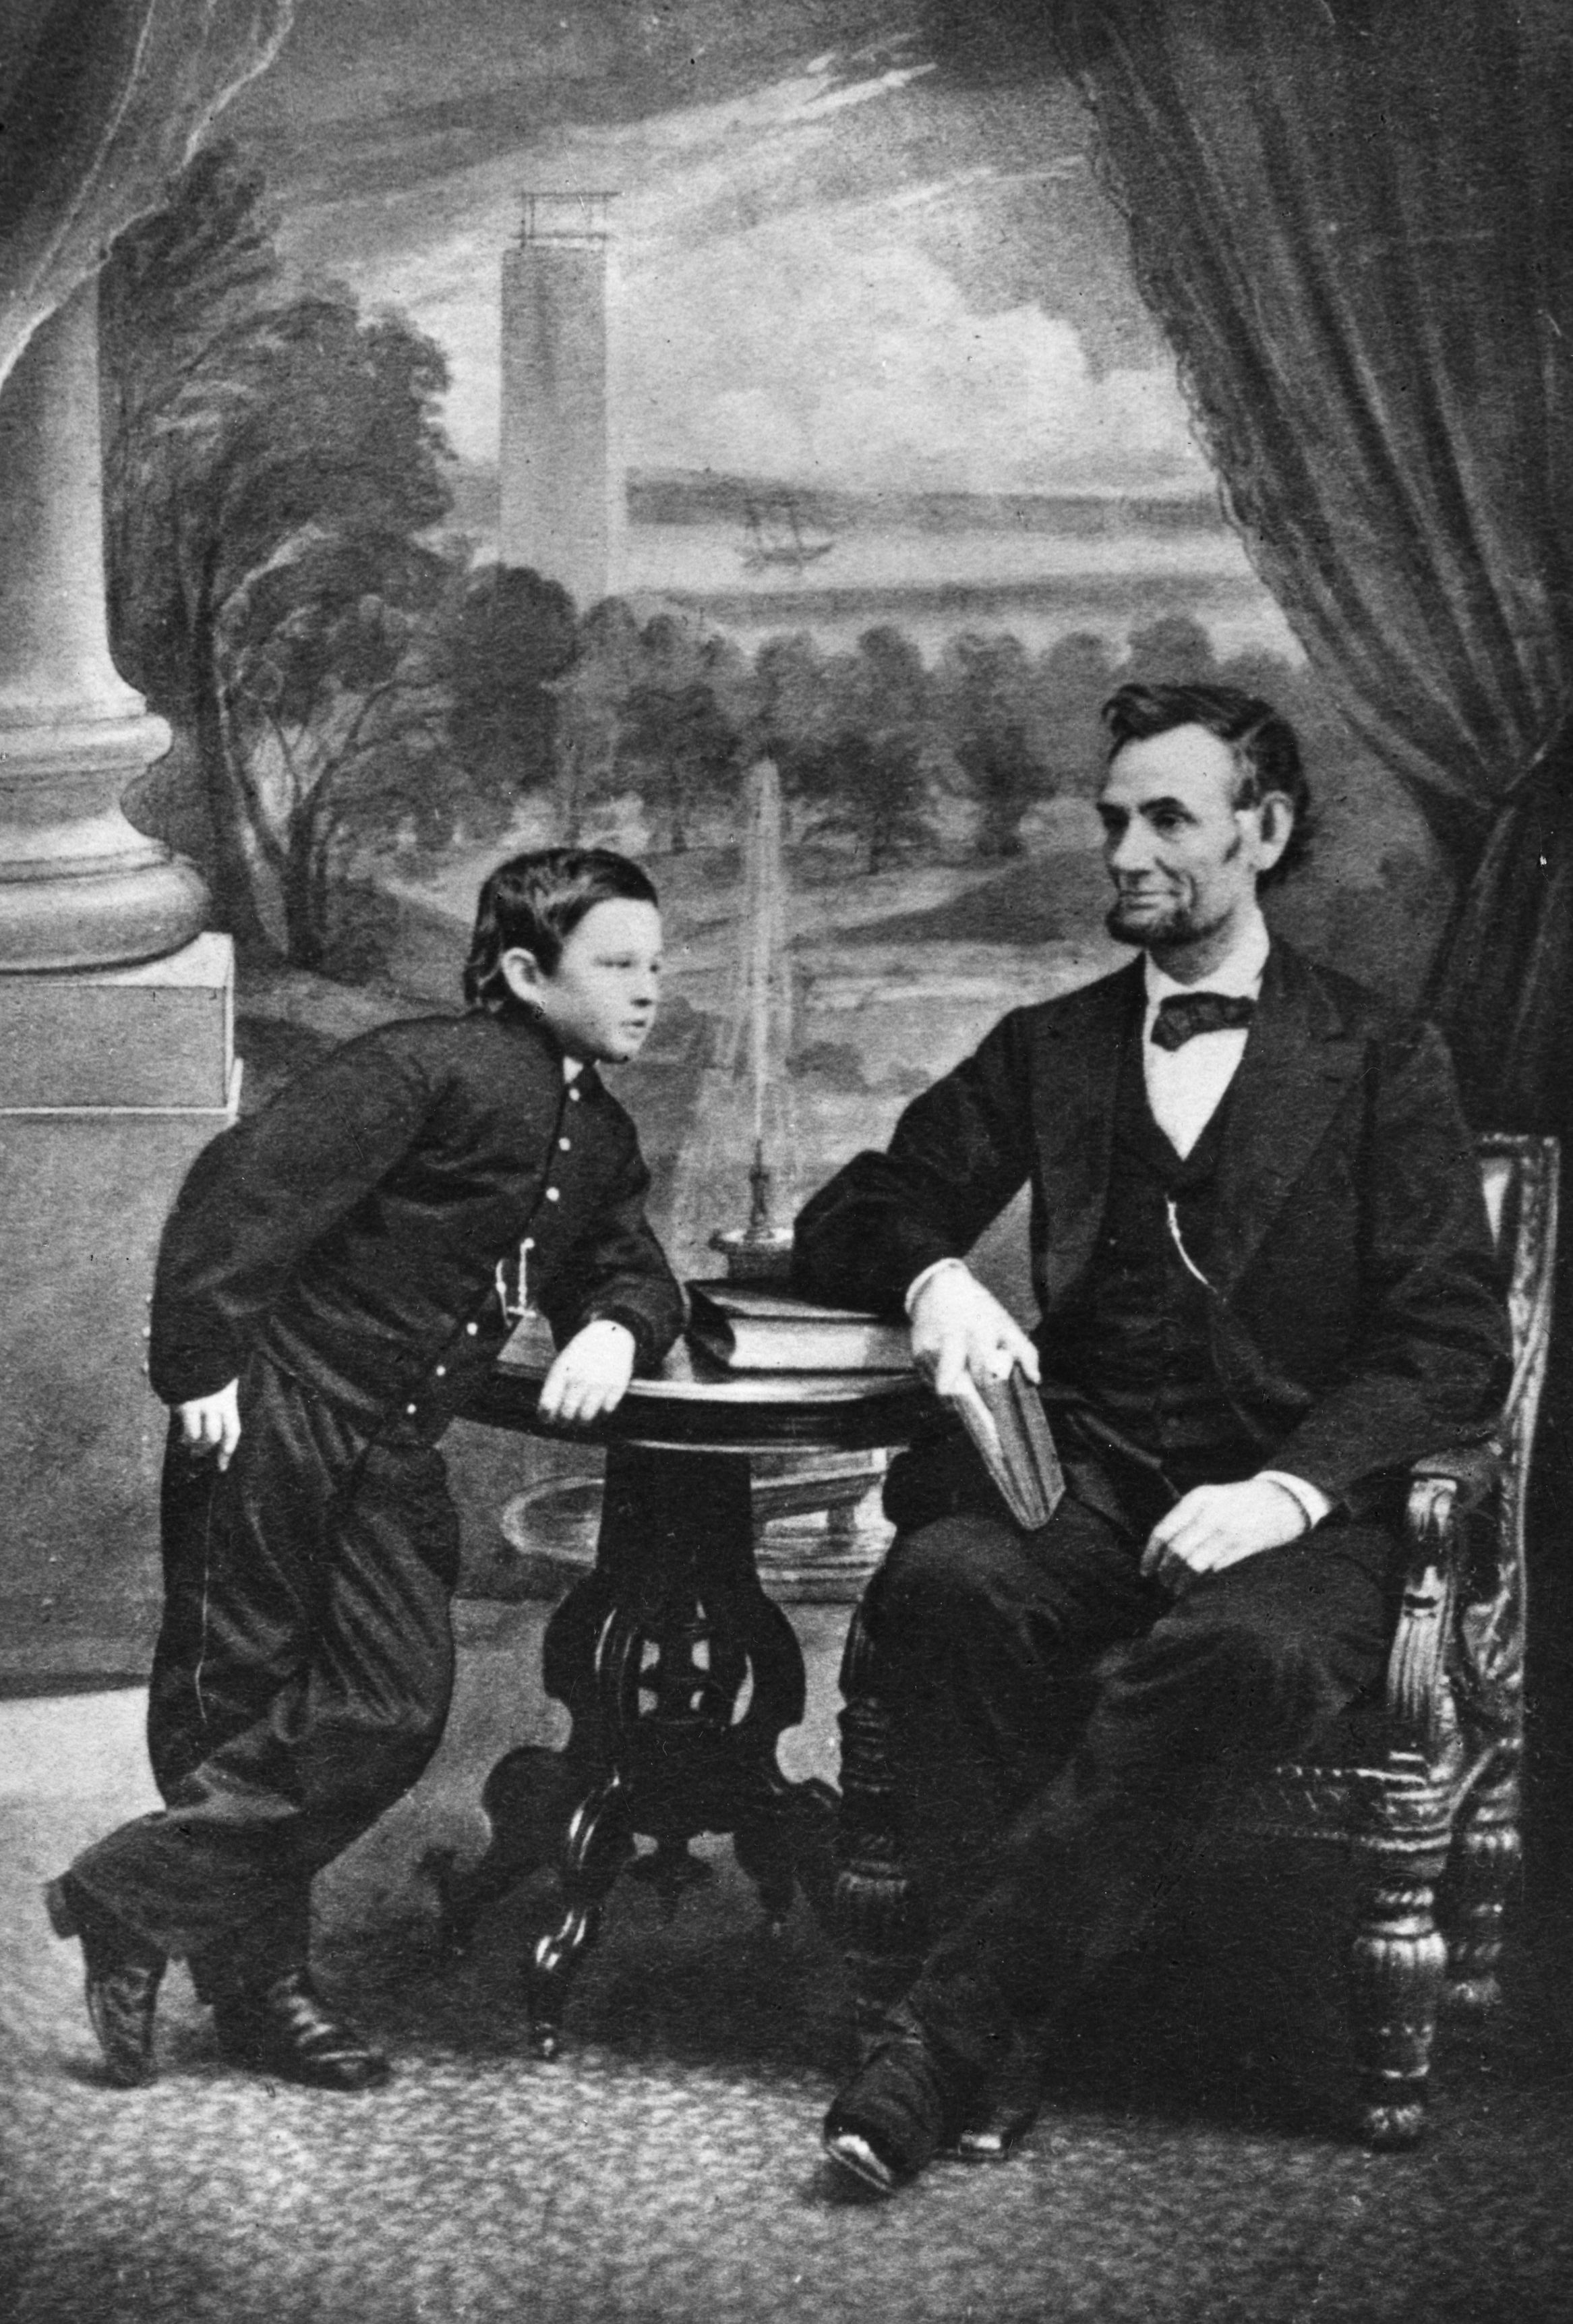 Abraham Lincoln and his son Thomas